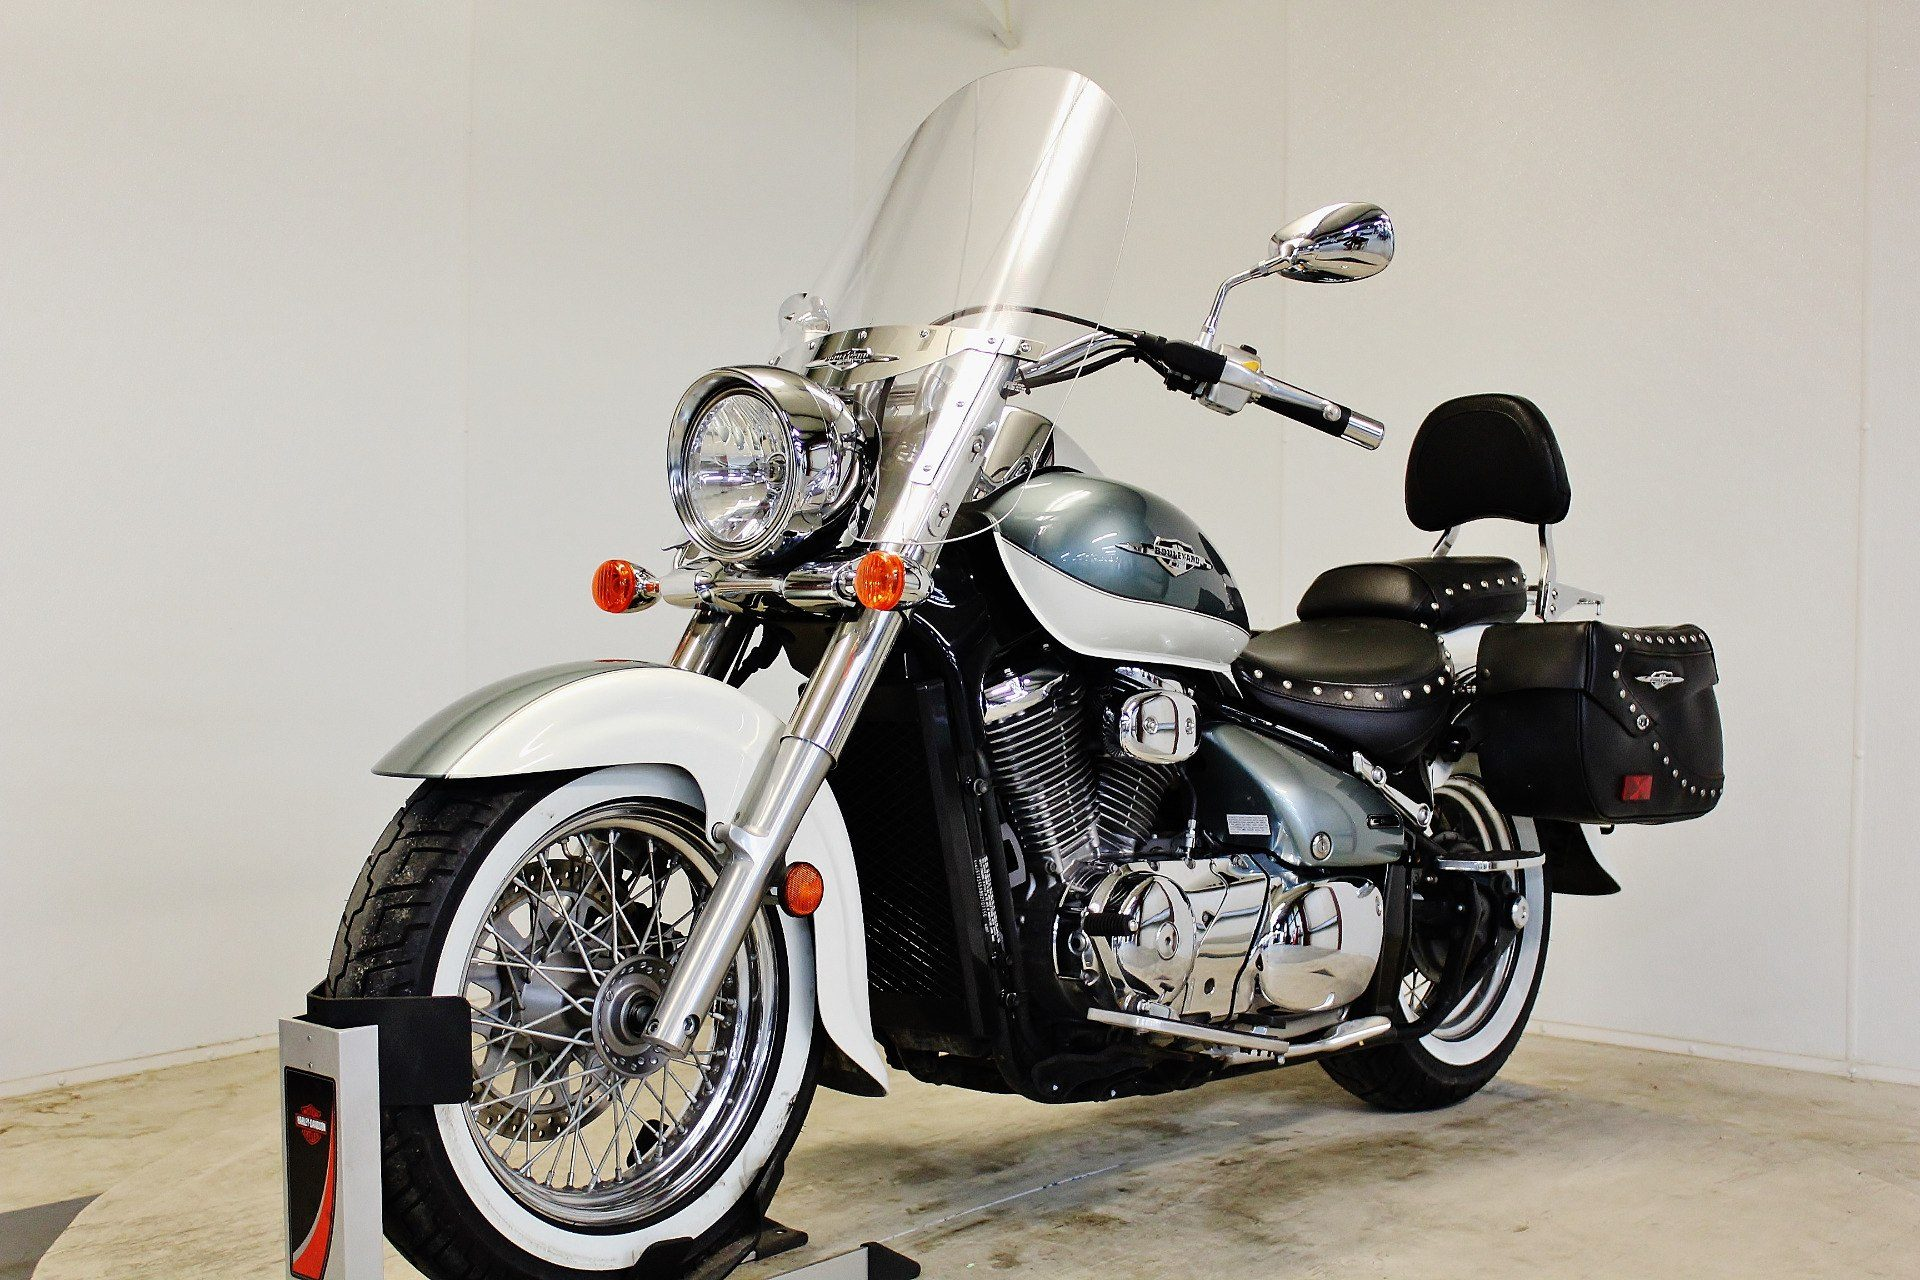 2011 Suzuki Boulevard C50T in Pittsfield, Massachusetts